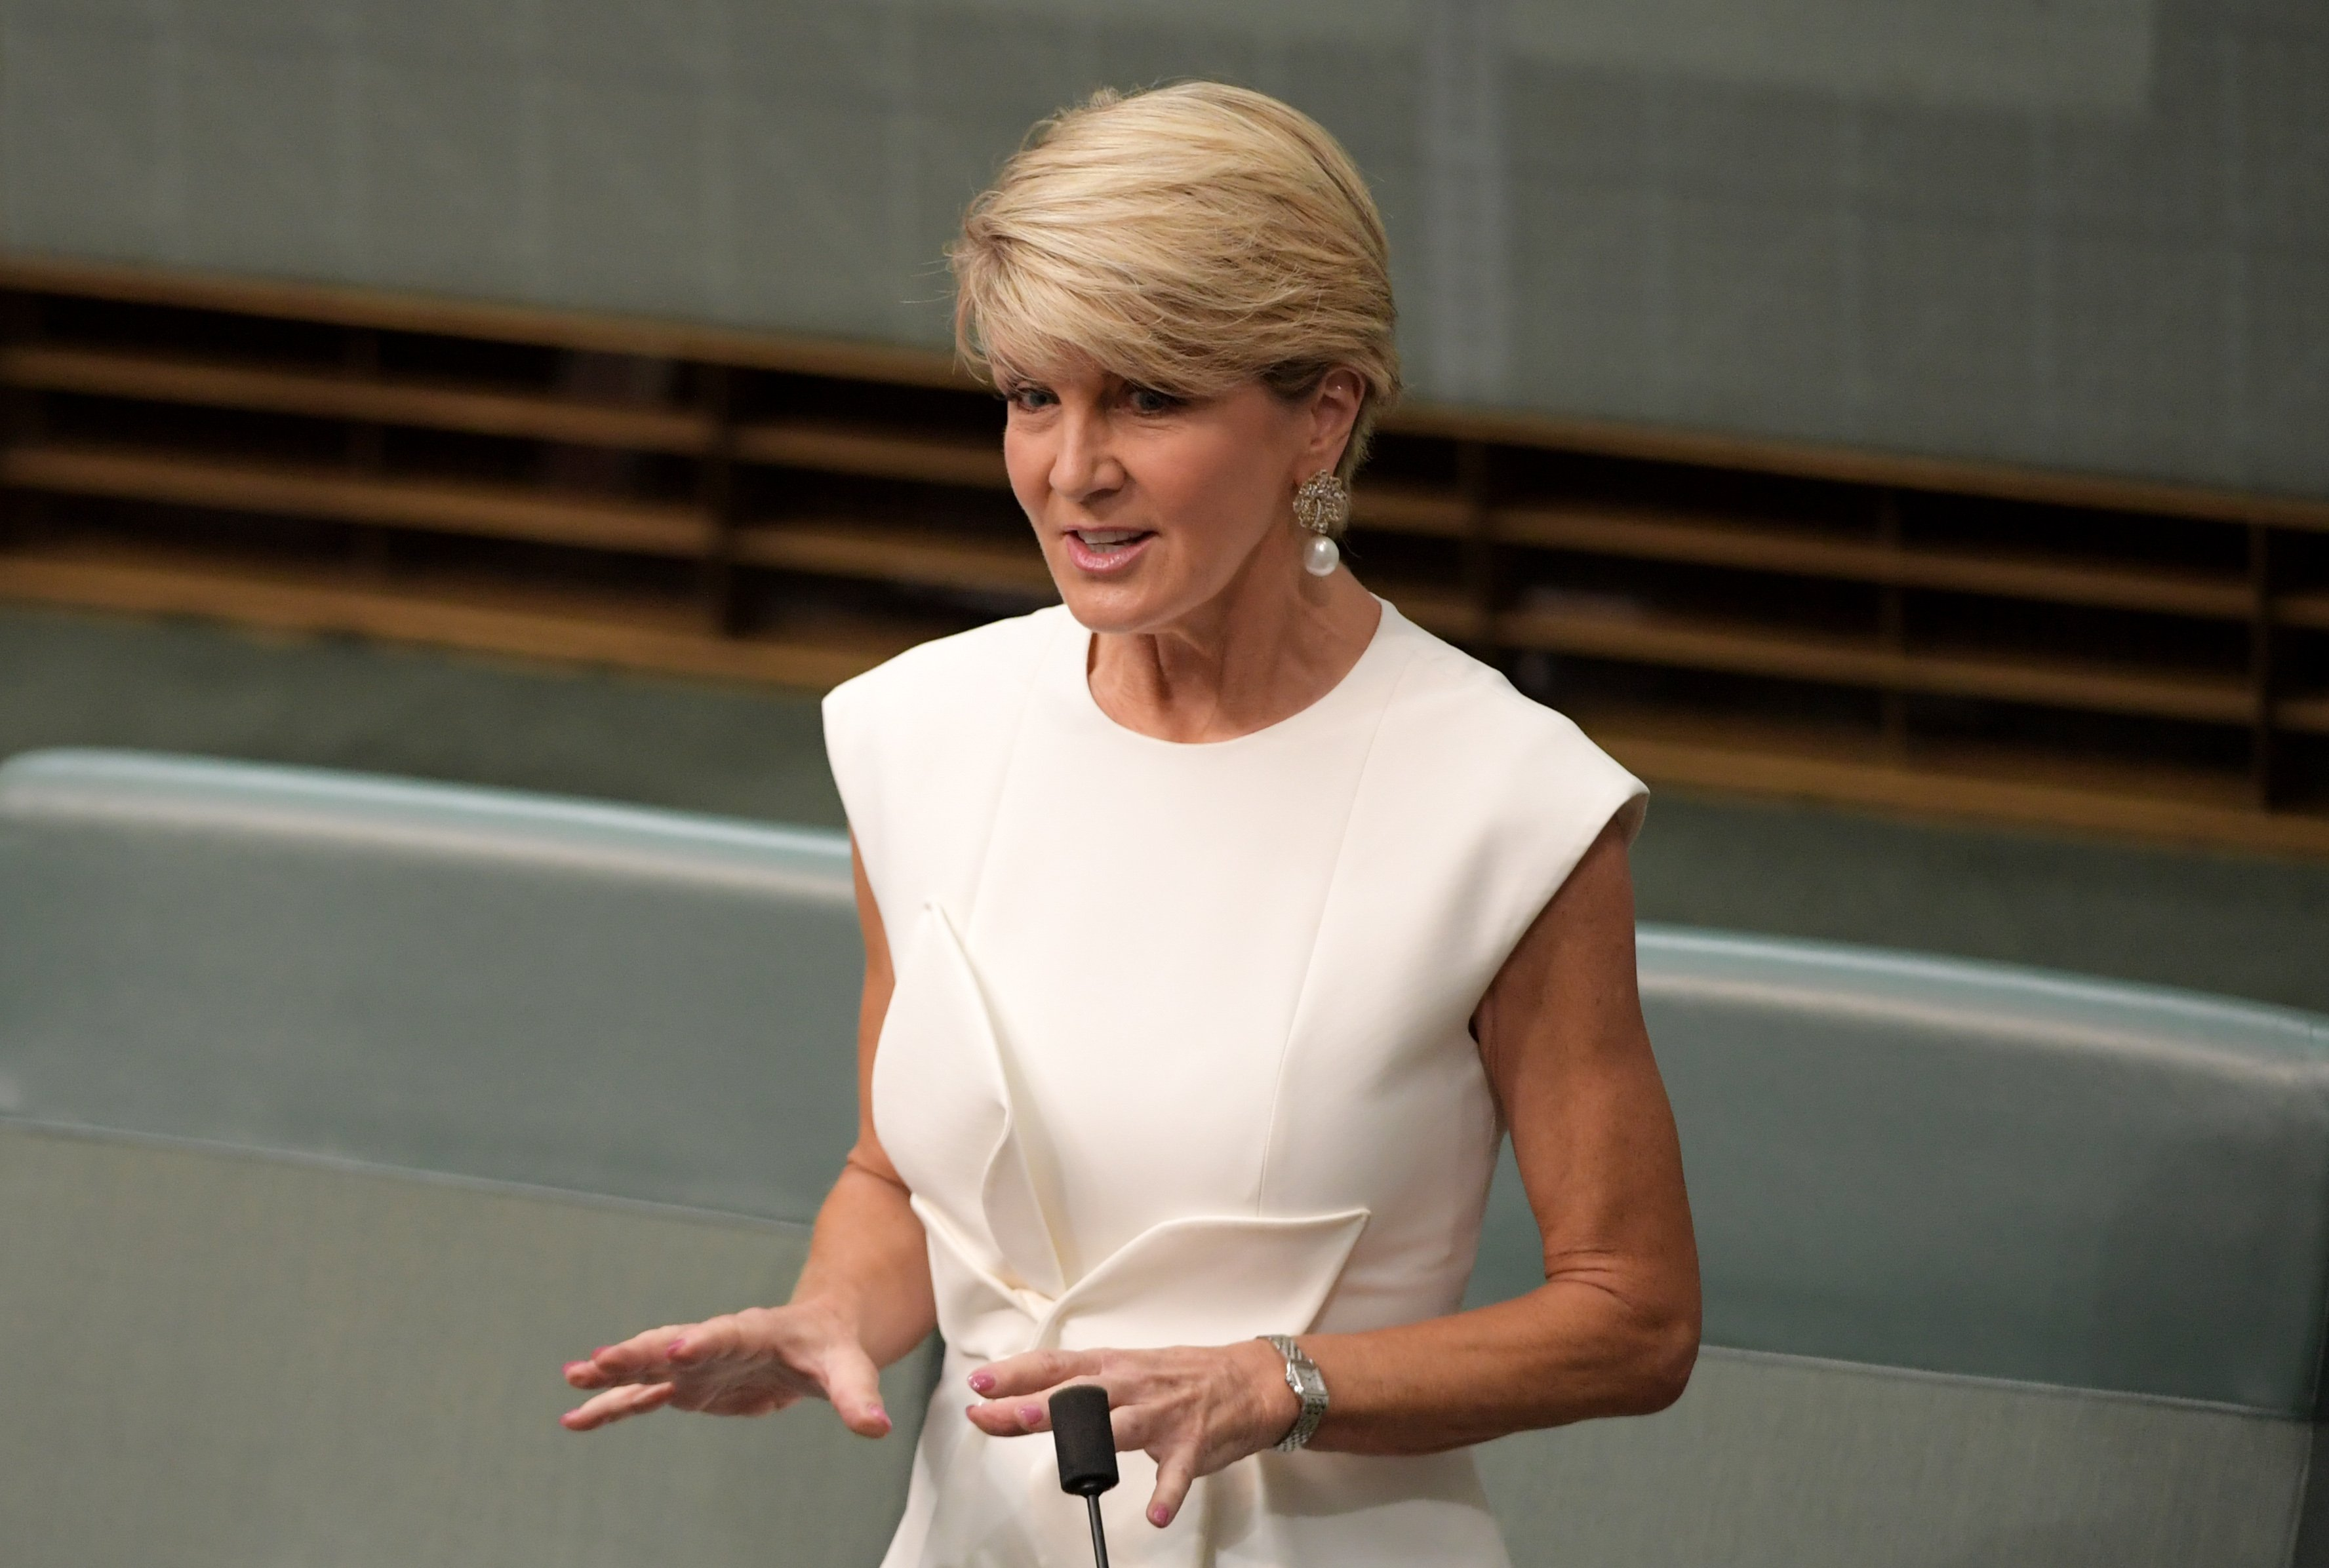 Former foreign minister of Australia Julie Bishop at the Parliament House | Photo: Getty Images